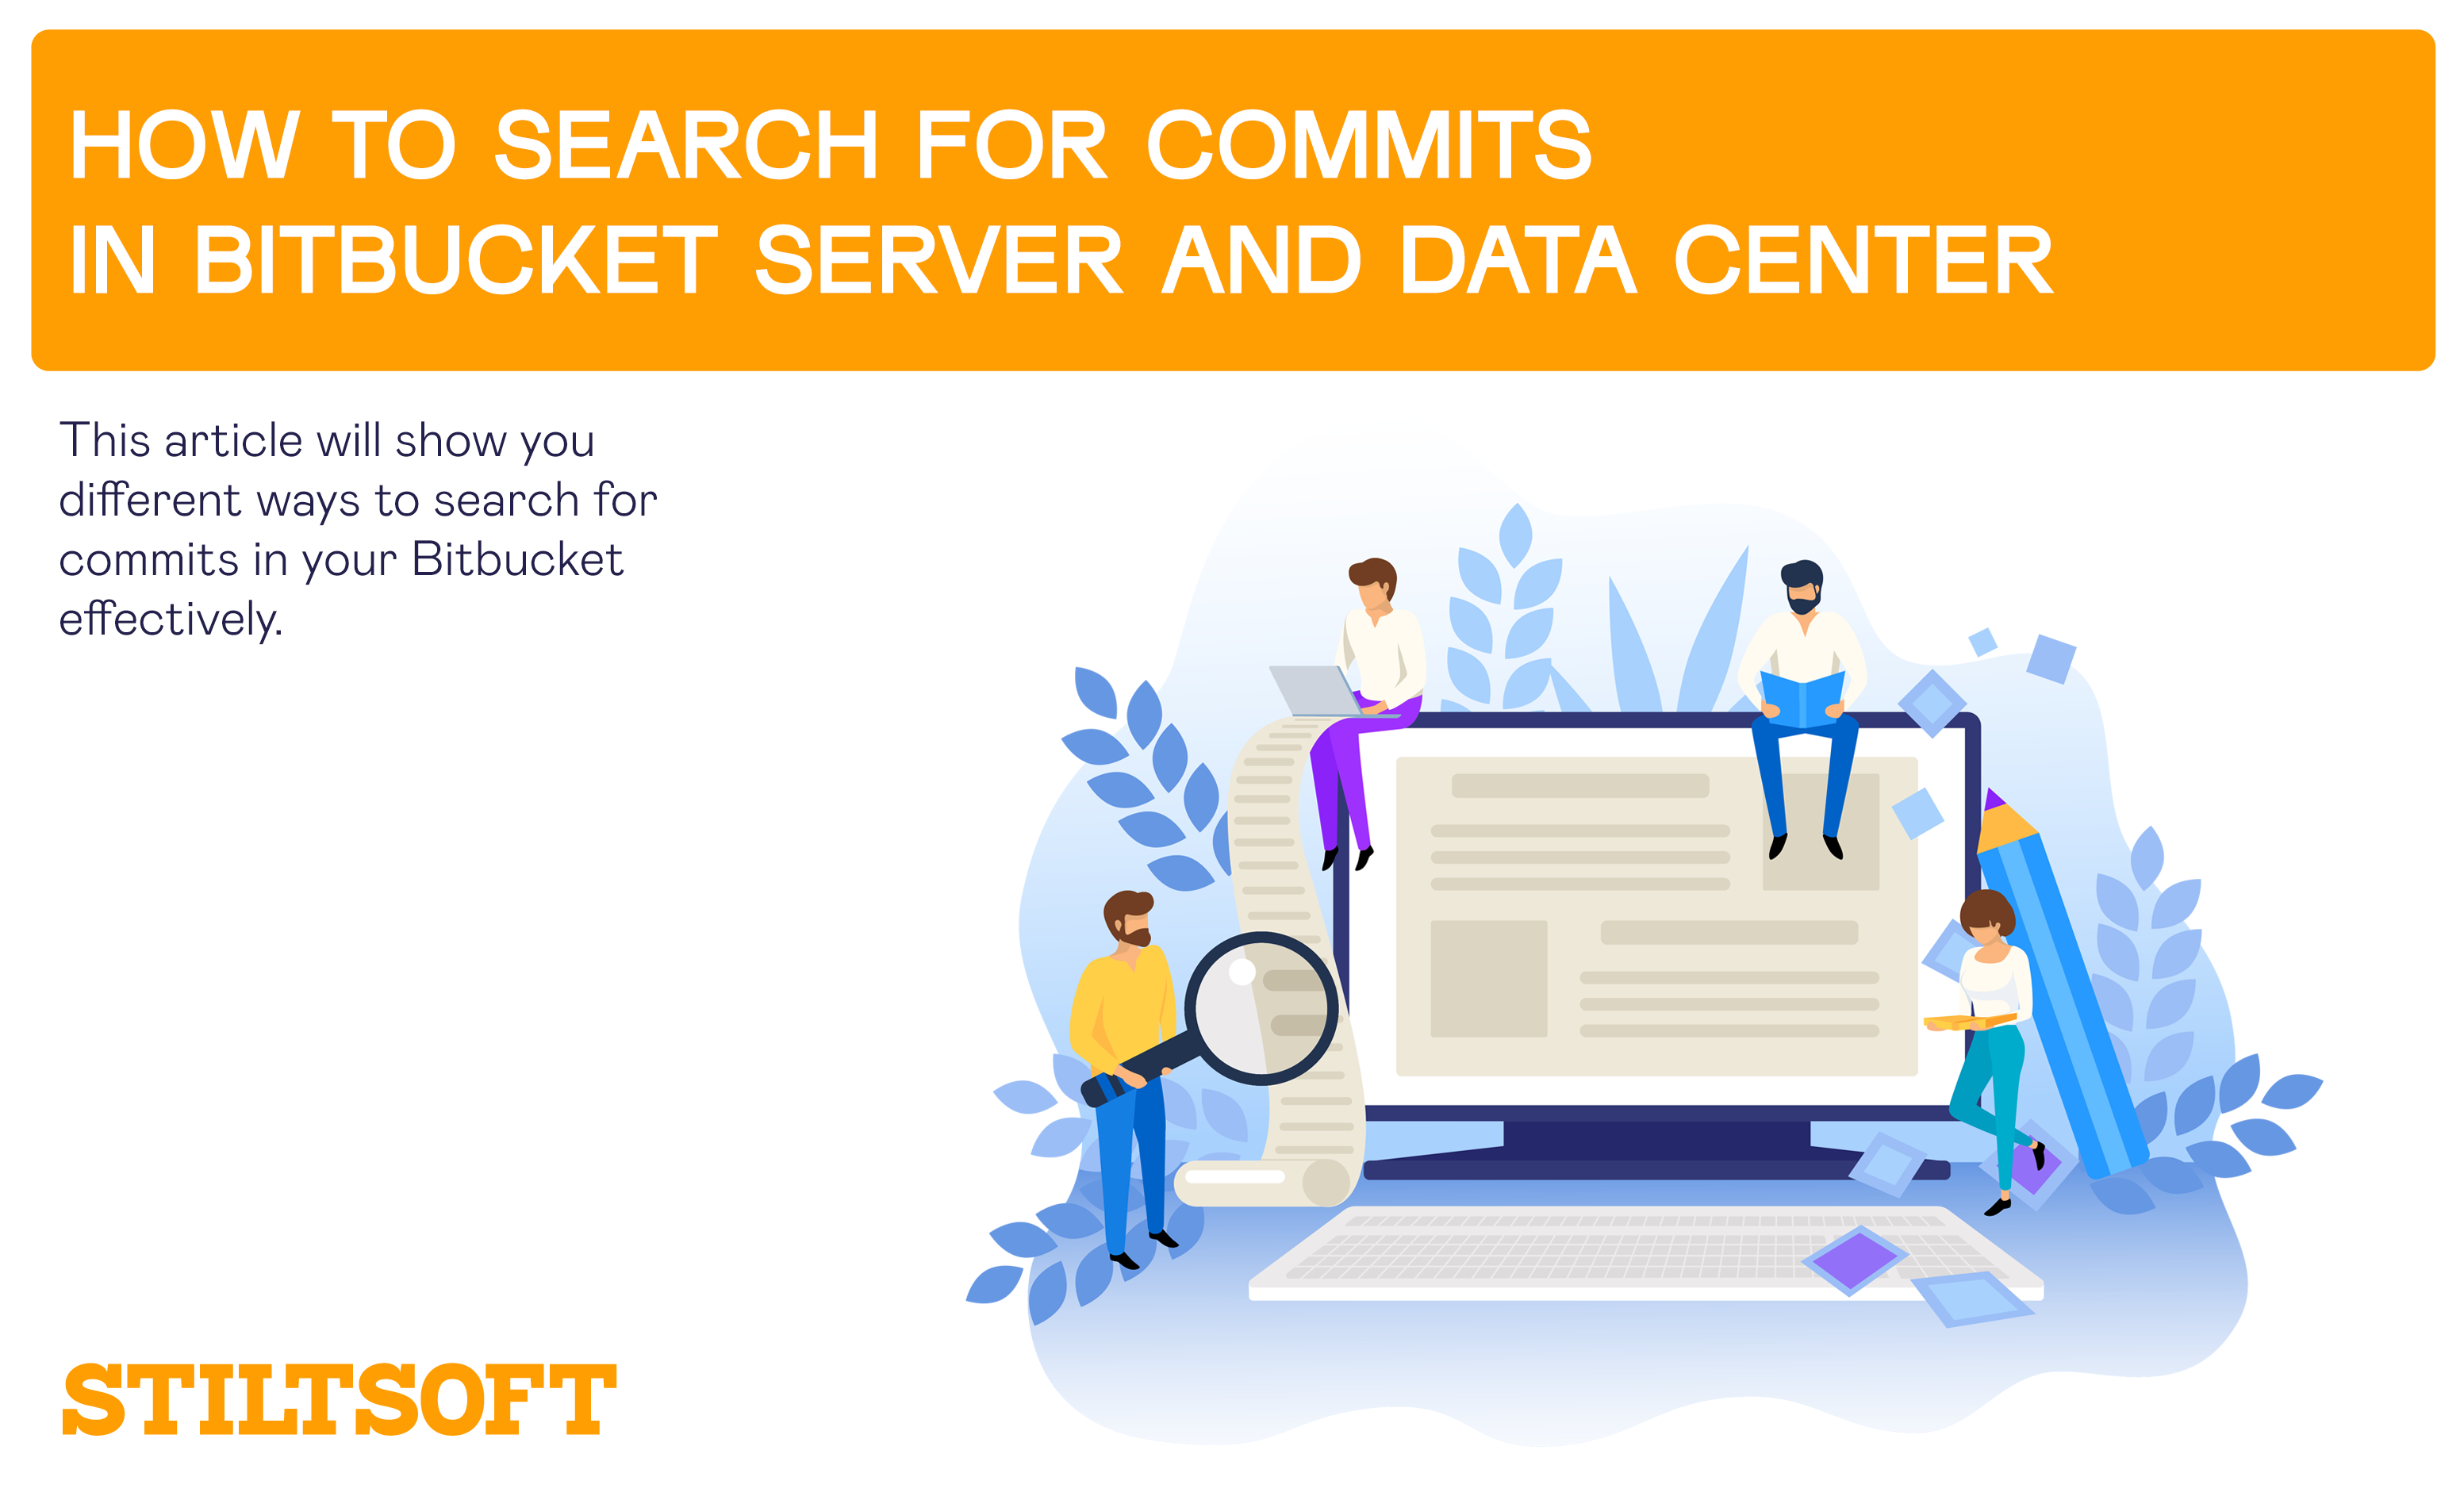 How to Search for Commits in Bitbucket Server and Data Center